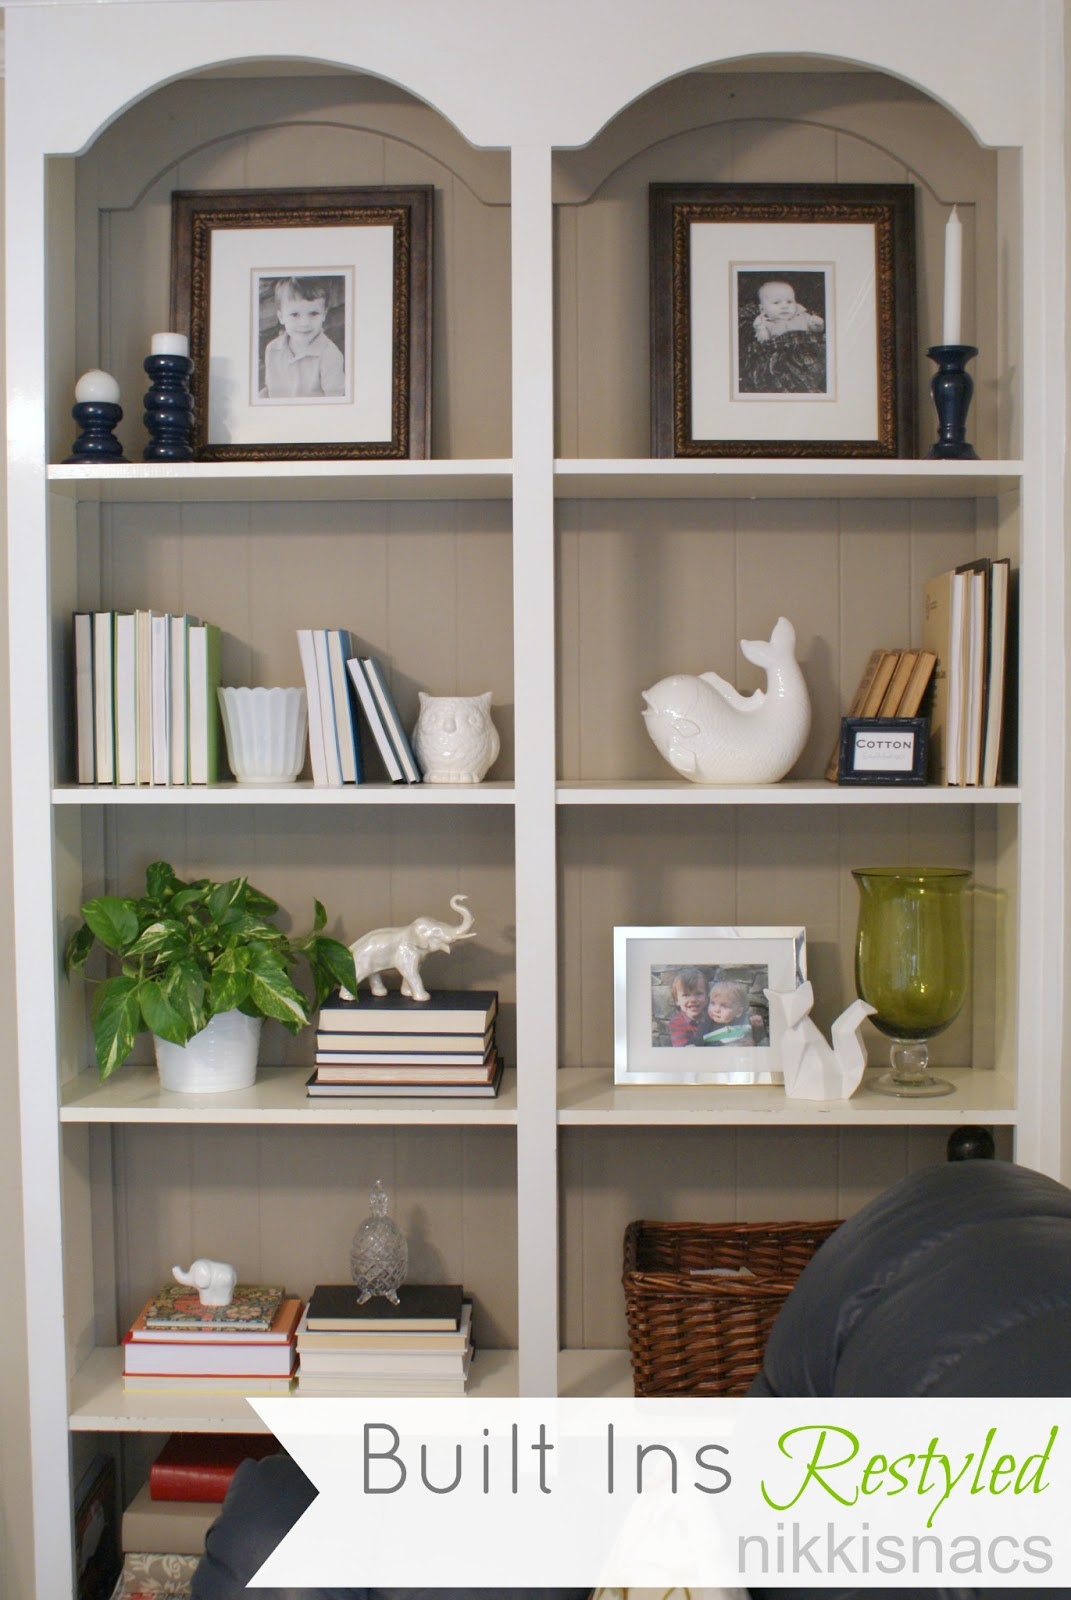 Best Nikkis Nacs The Built Ins Restyled This Month